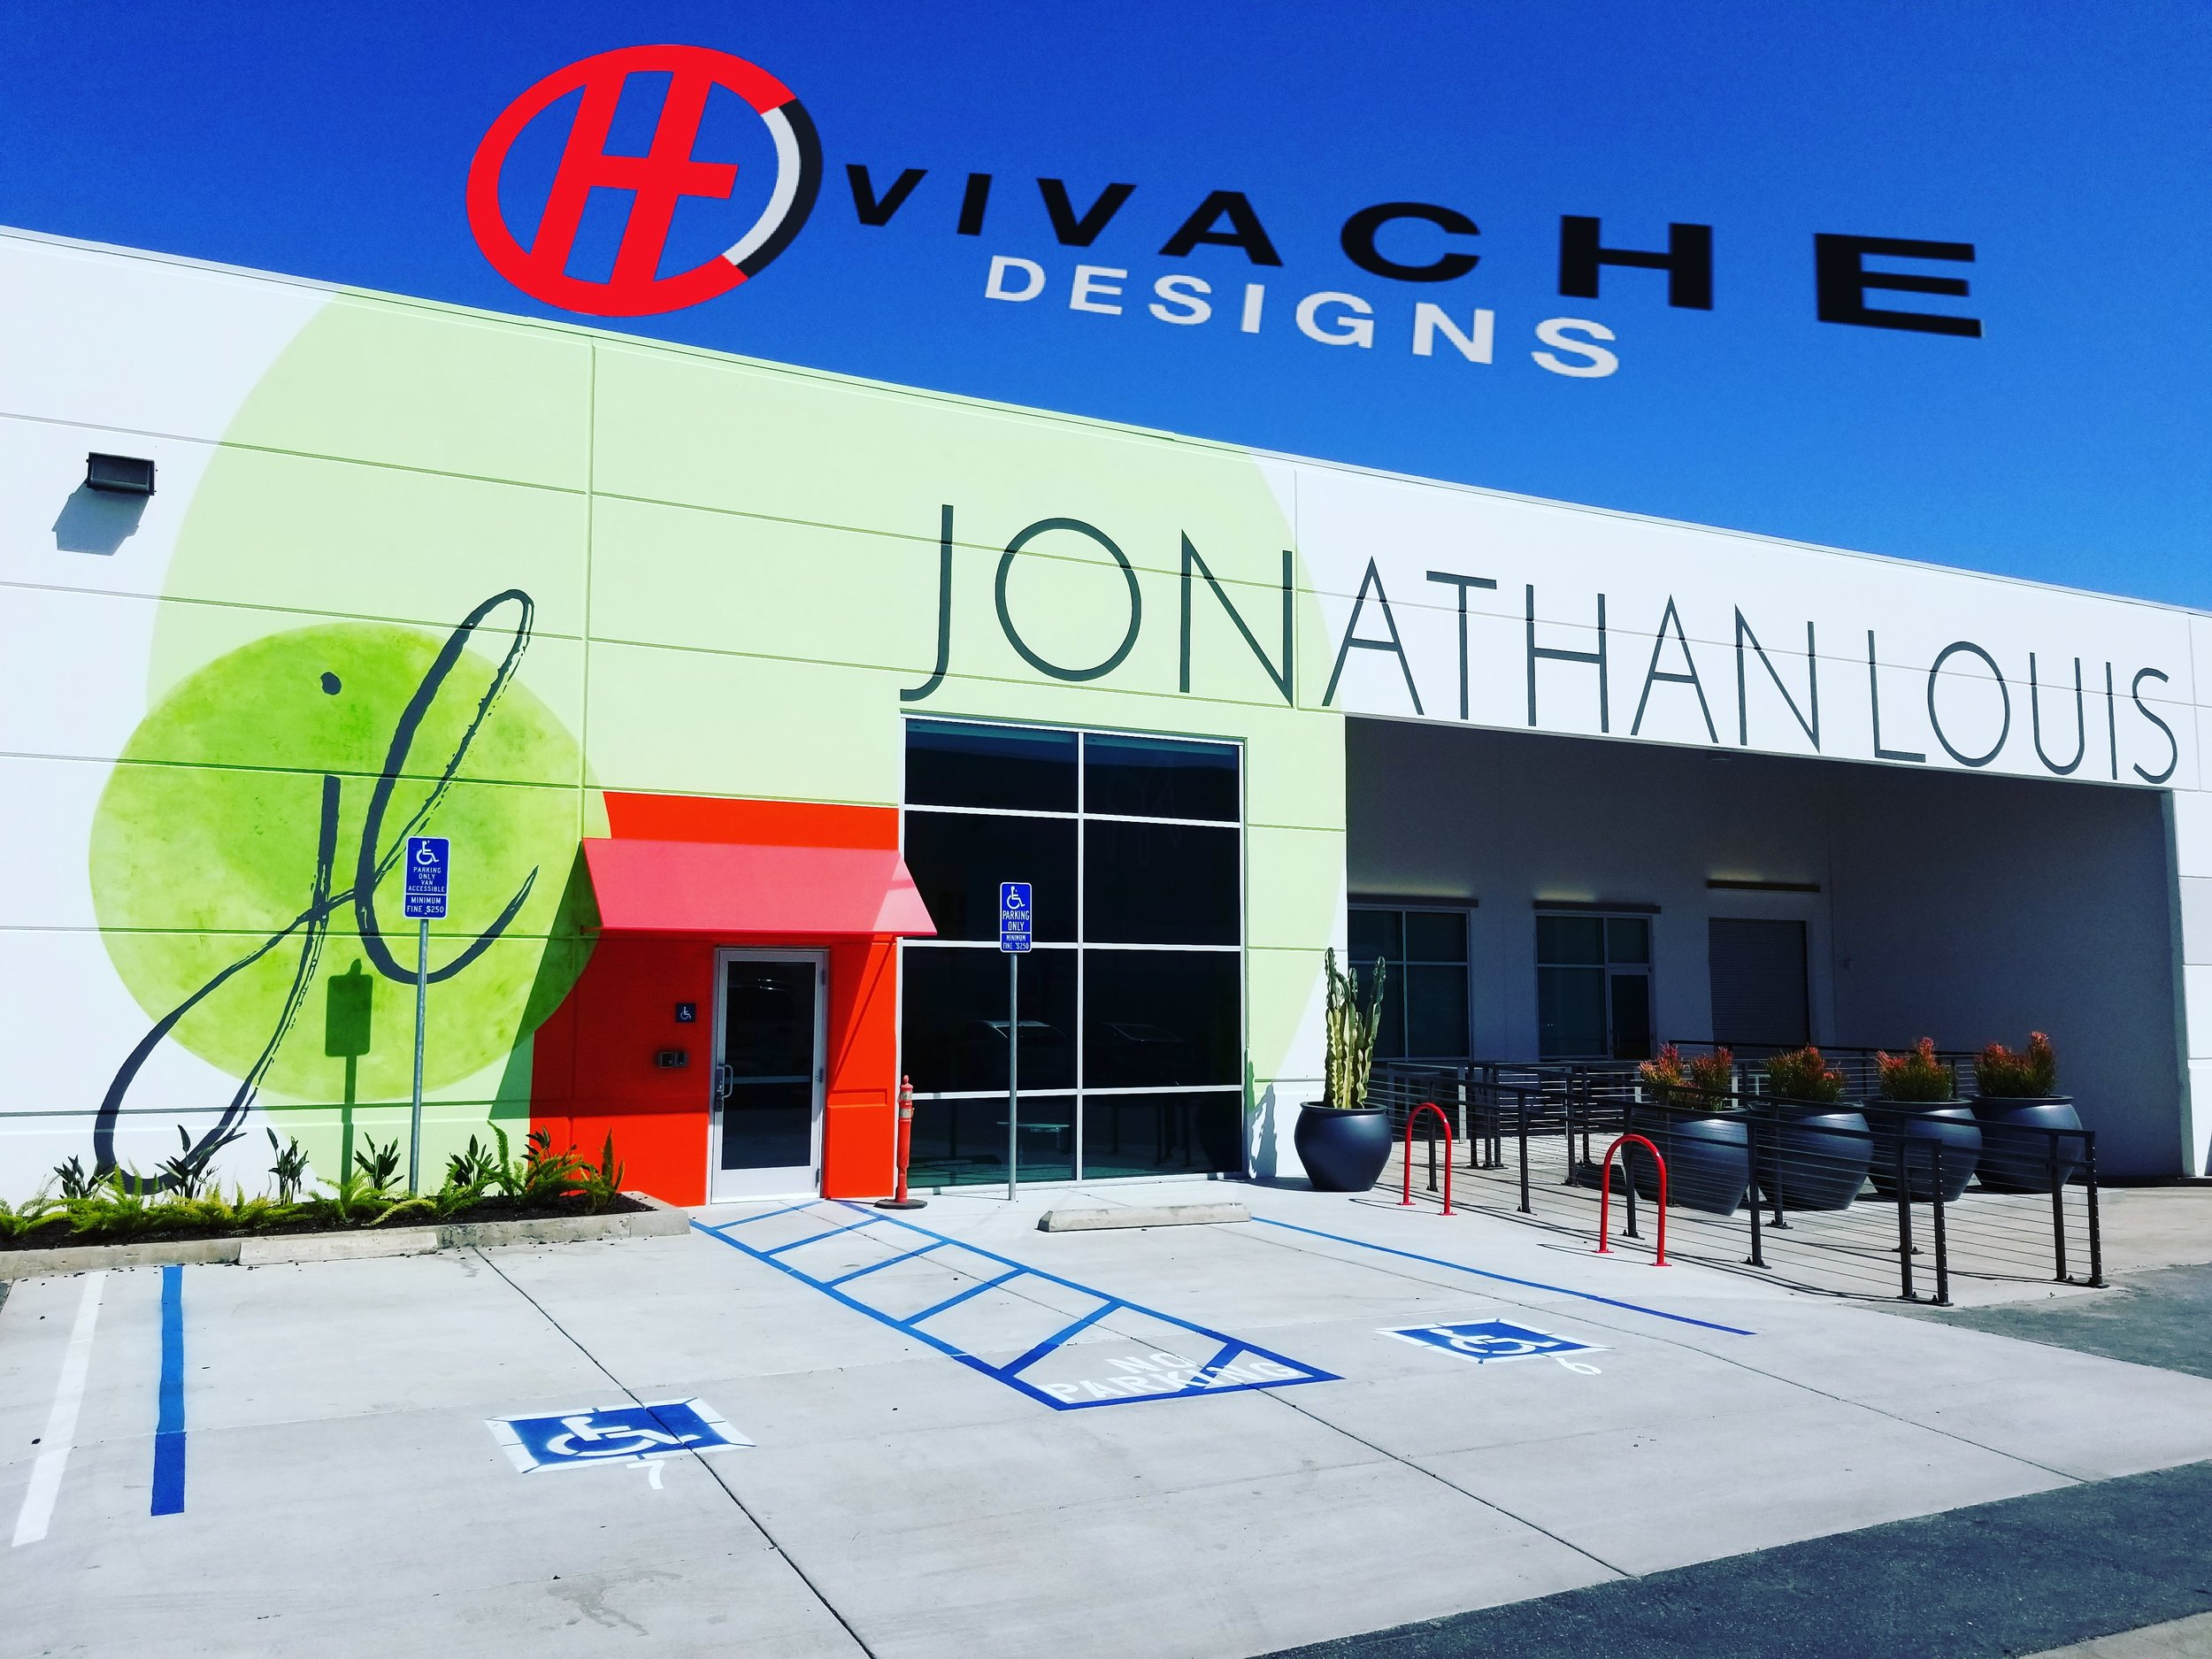 Vivache Designs is your 100% trusted mural painter. This mural painting signage is a custom design for Jonathan Louis's Corporate Headquarters in Los Angeles. If you need the best mural painter Los Angeles give is a call 1-866-VIVACHE NOW!